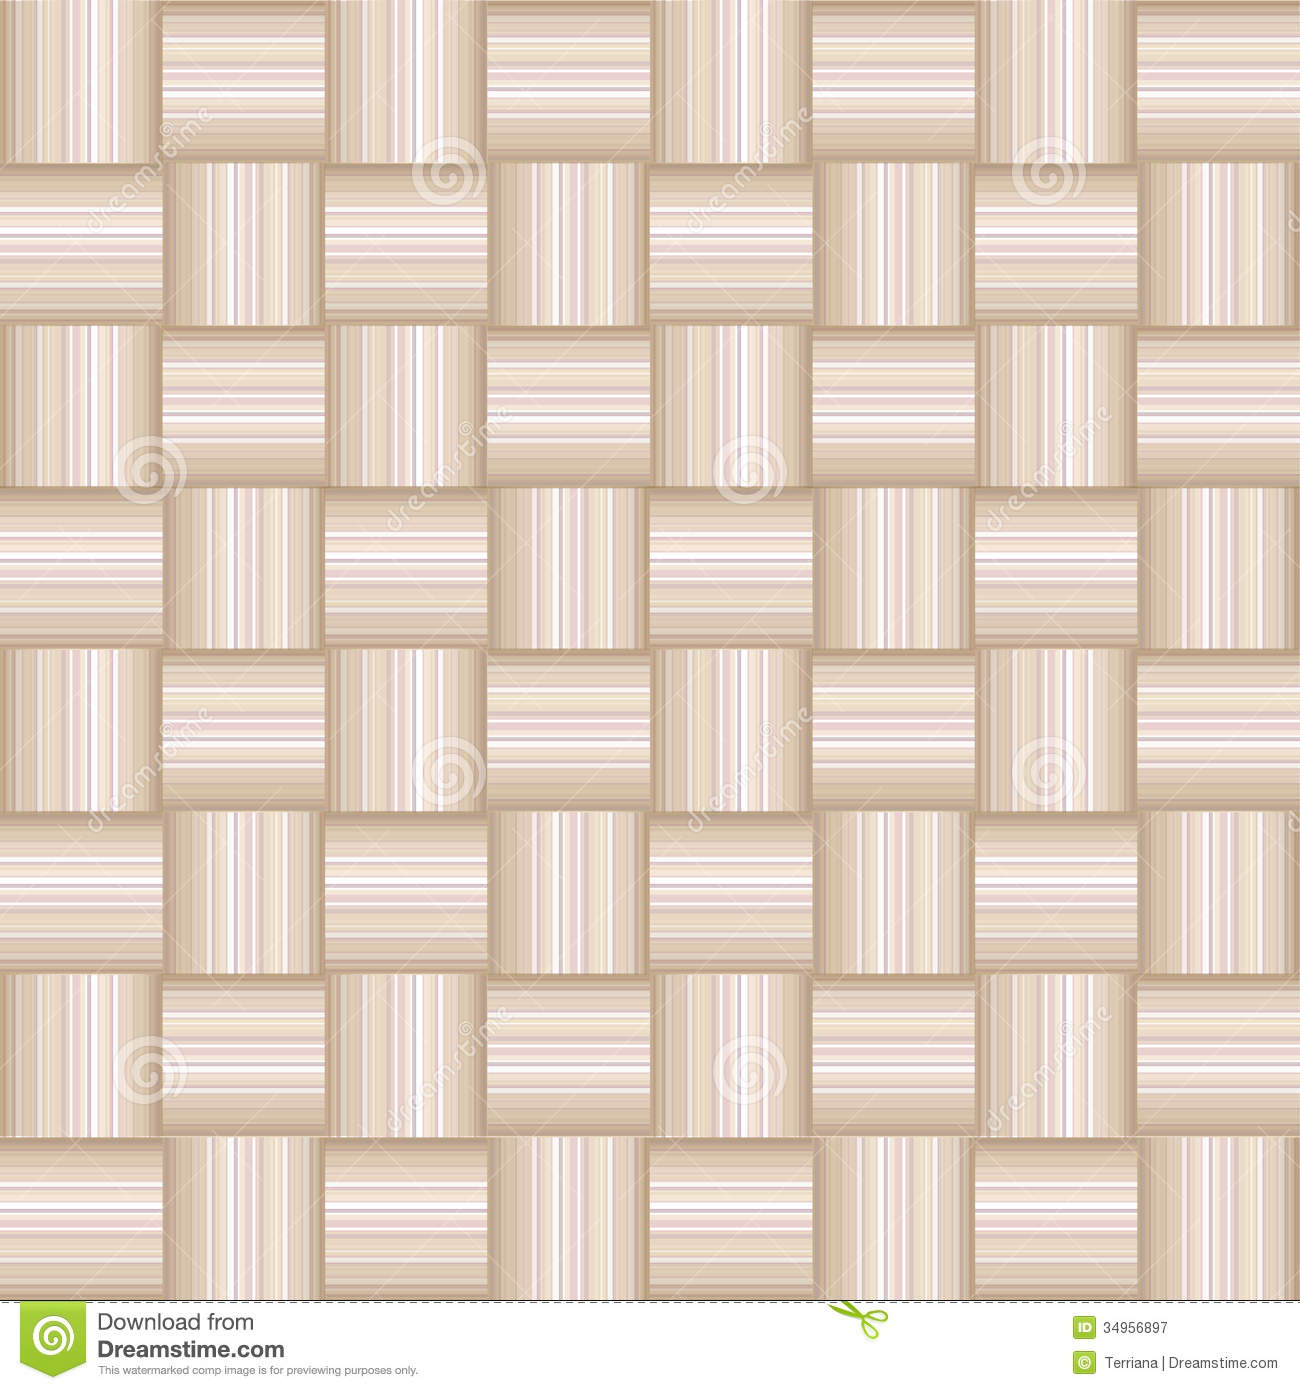 Abstract Checkered Geometric Seamless Texture Royalty Free